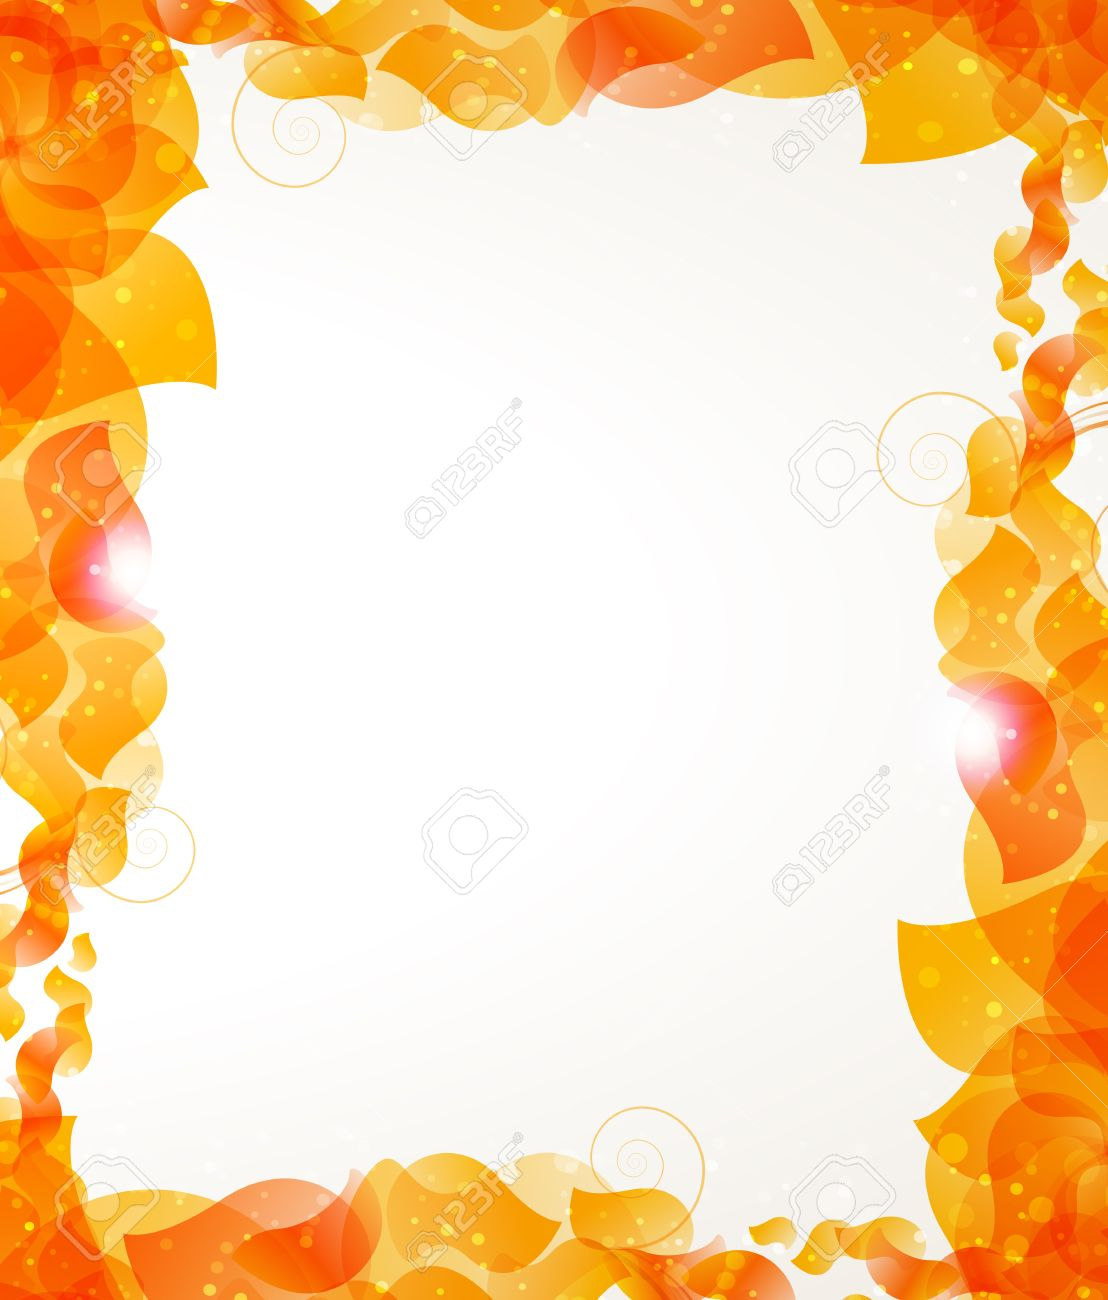 Transparent Orange Petals On A White Background. Abstract Frame ...